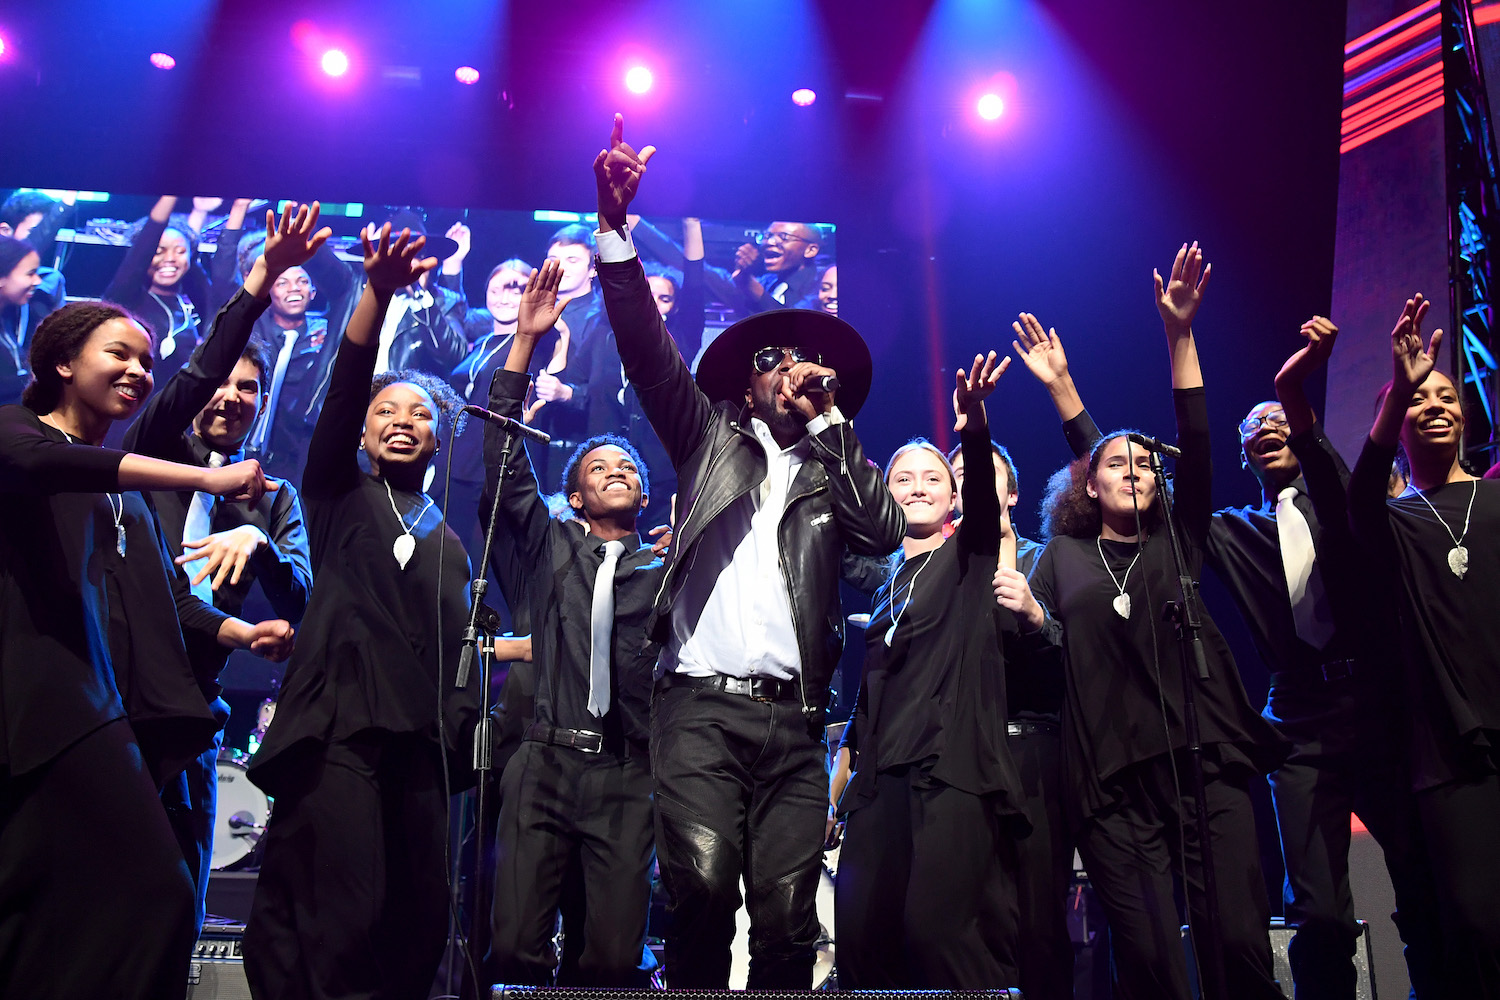 Philanthropic musician DJ Irie, representing the Irie Foundation, and Grammy Award-winning hip hop star Wyclef Jean get the audience dancing to kick off the evening, accompanied by the Young People's Chorus of New York.